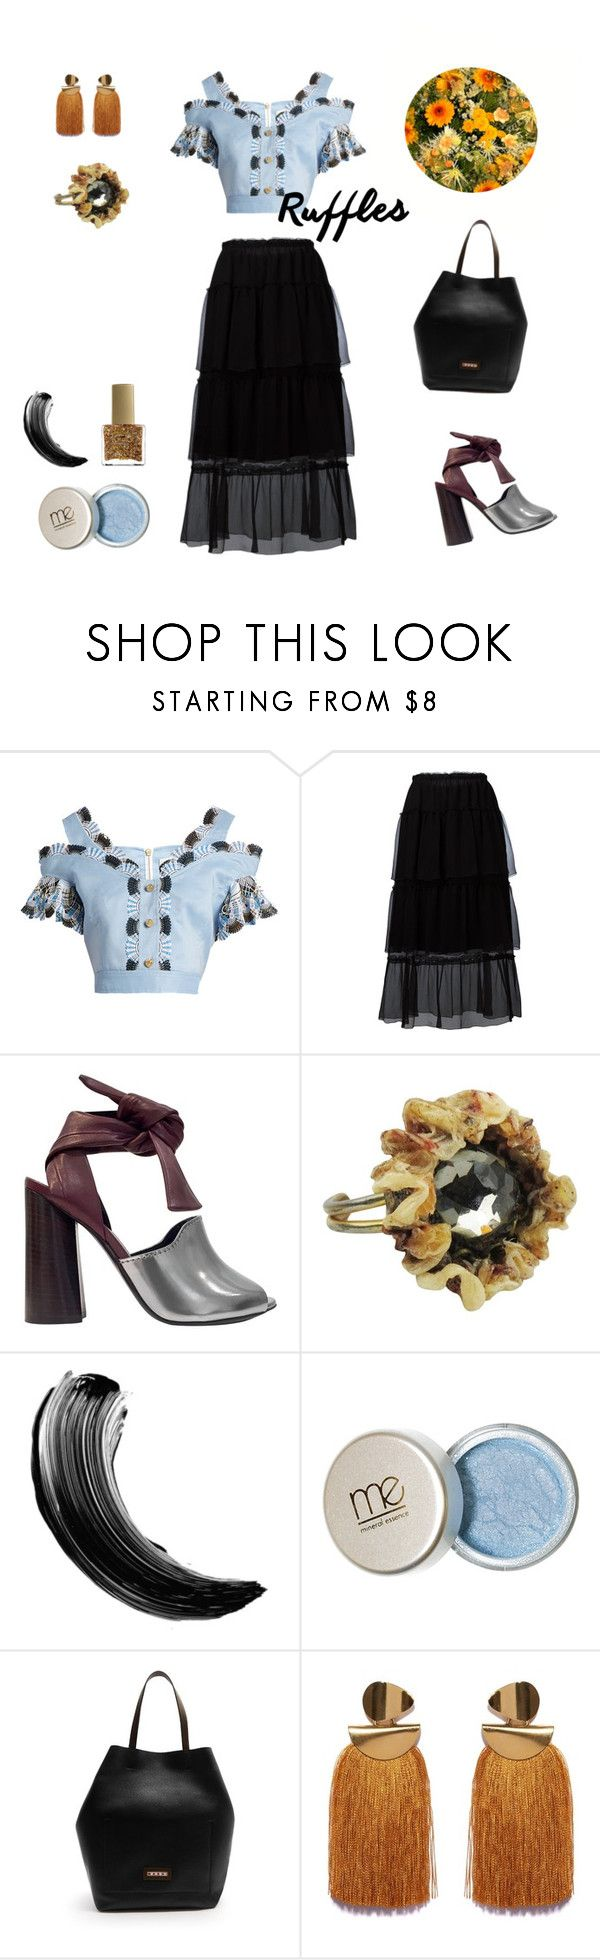 """""""Golden Skies"""" by humbleharpy ❤ liked on Polyvore featuring Peter Pilotto, Sonia Rykiel, 3.1 Phillip Lim, Line Vautrin, Marni, ncLA and ruffledtops"""